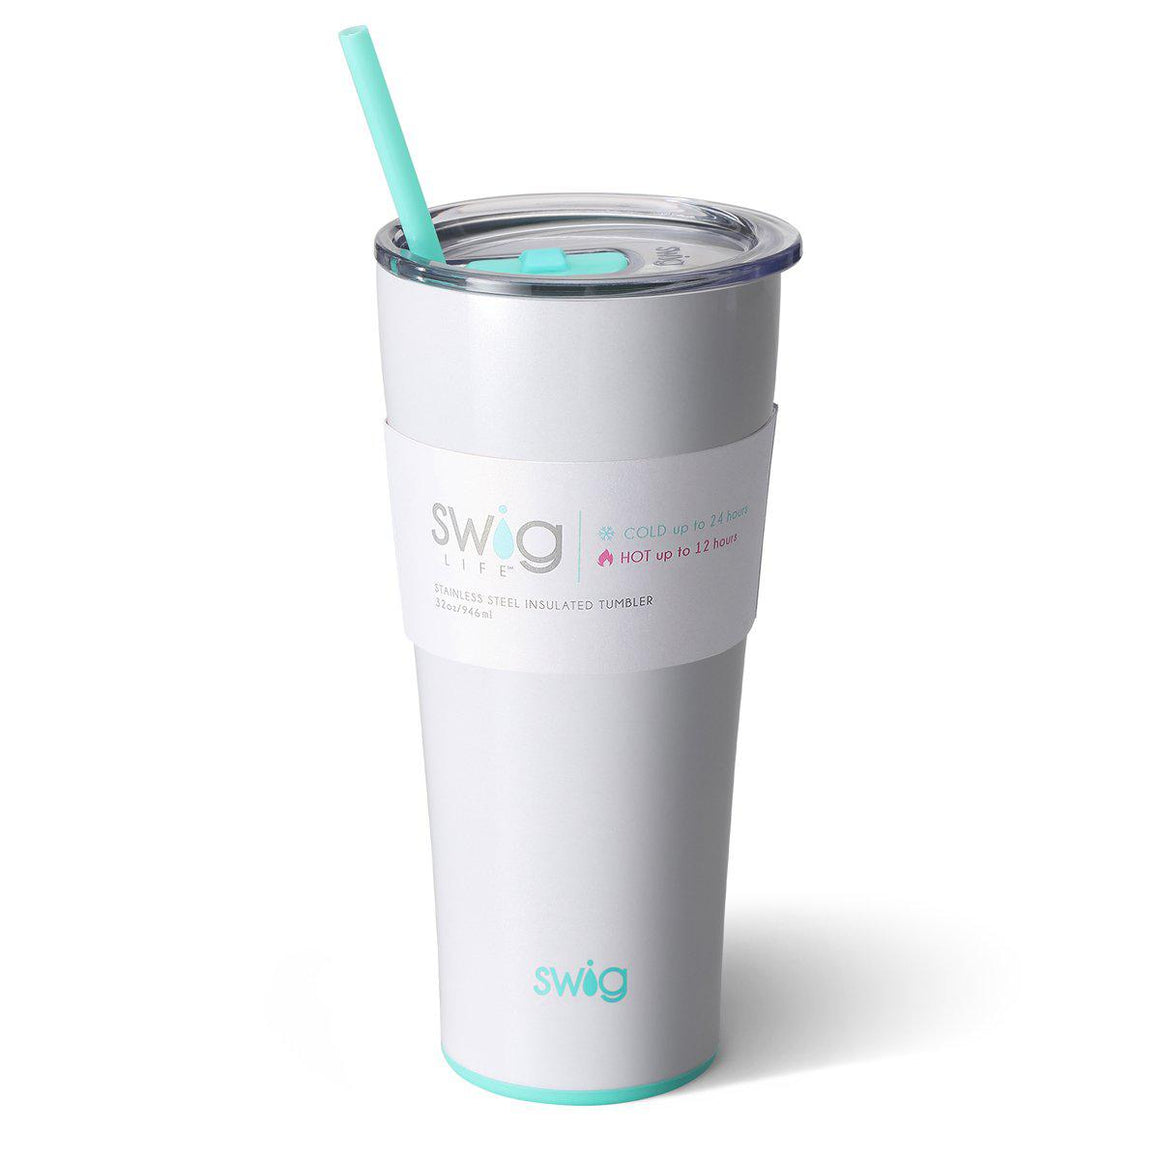 Swig Insulated 32oz Diamond White Personalized Tumbler - The Preppy Bunny